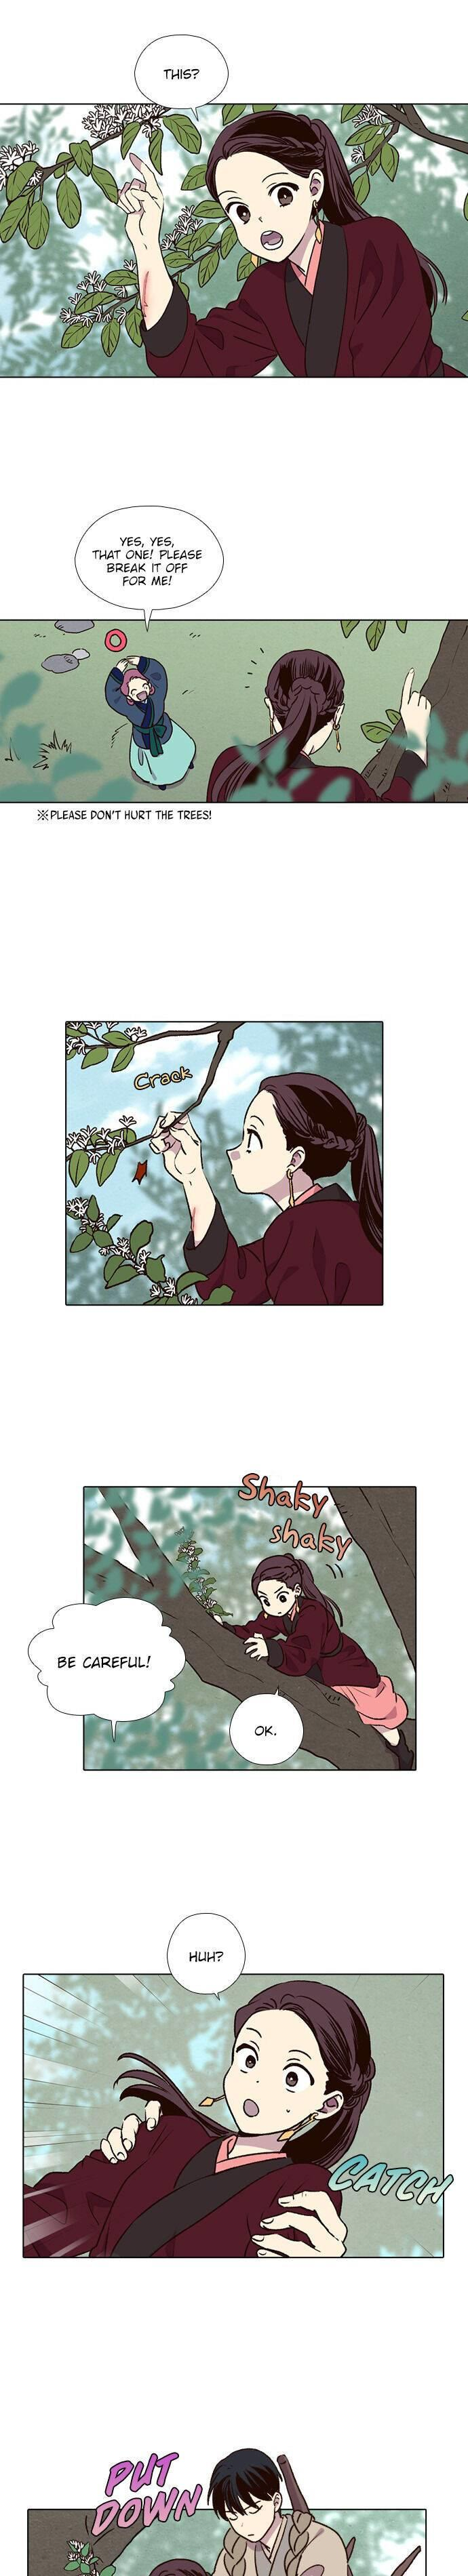 The Moon That Rises In The Day Chapter 184 page 4 - Mangakakalots.com